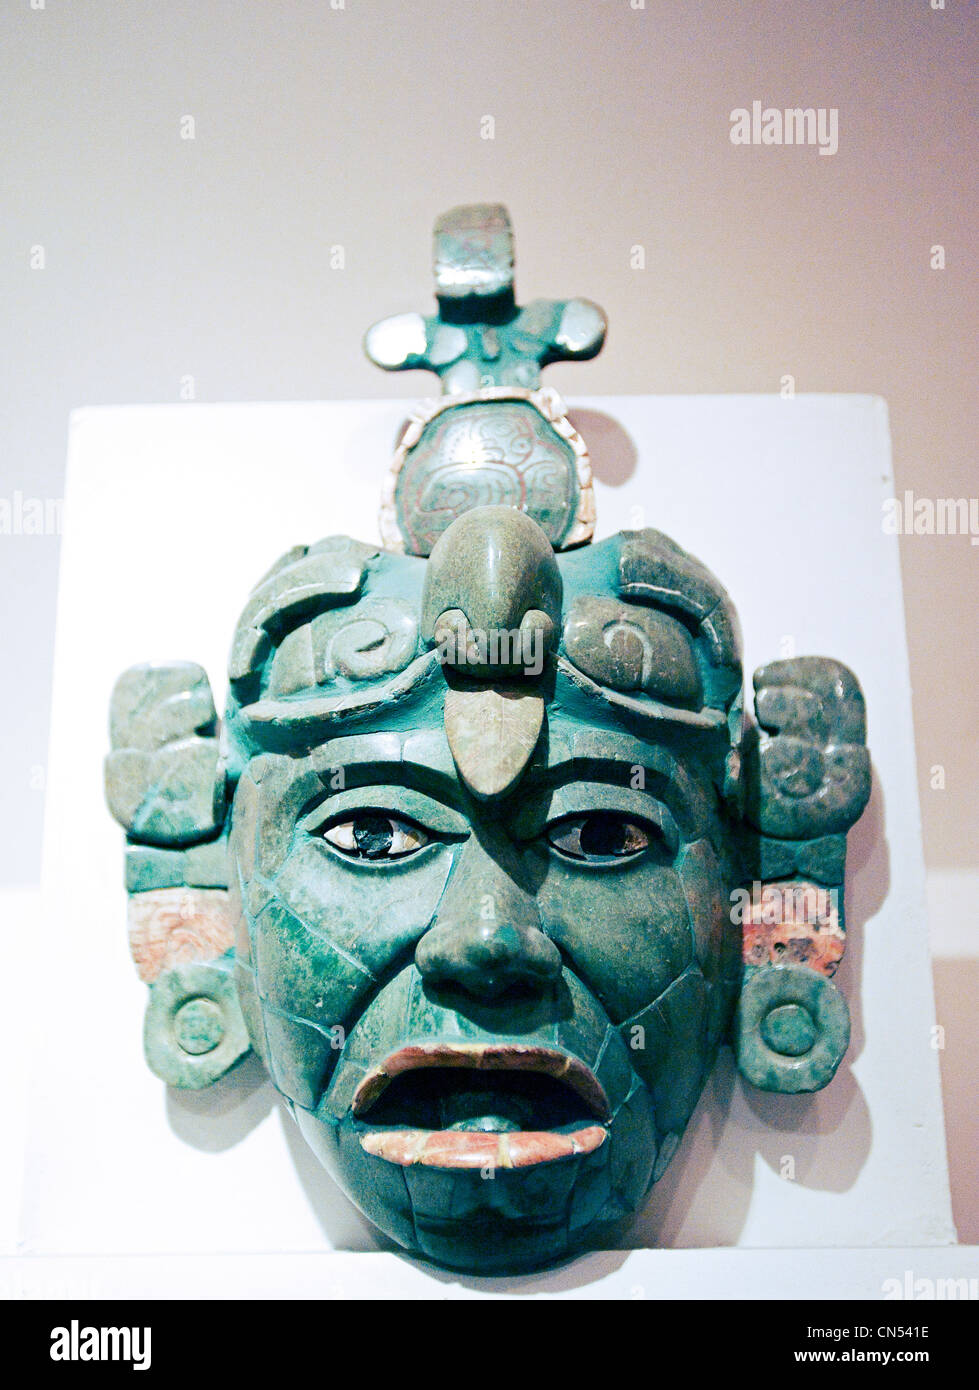 A jade mask from Tikal on display in Guatemala City's National Archaeology Museum. - Stock Image